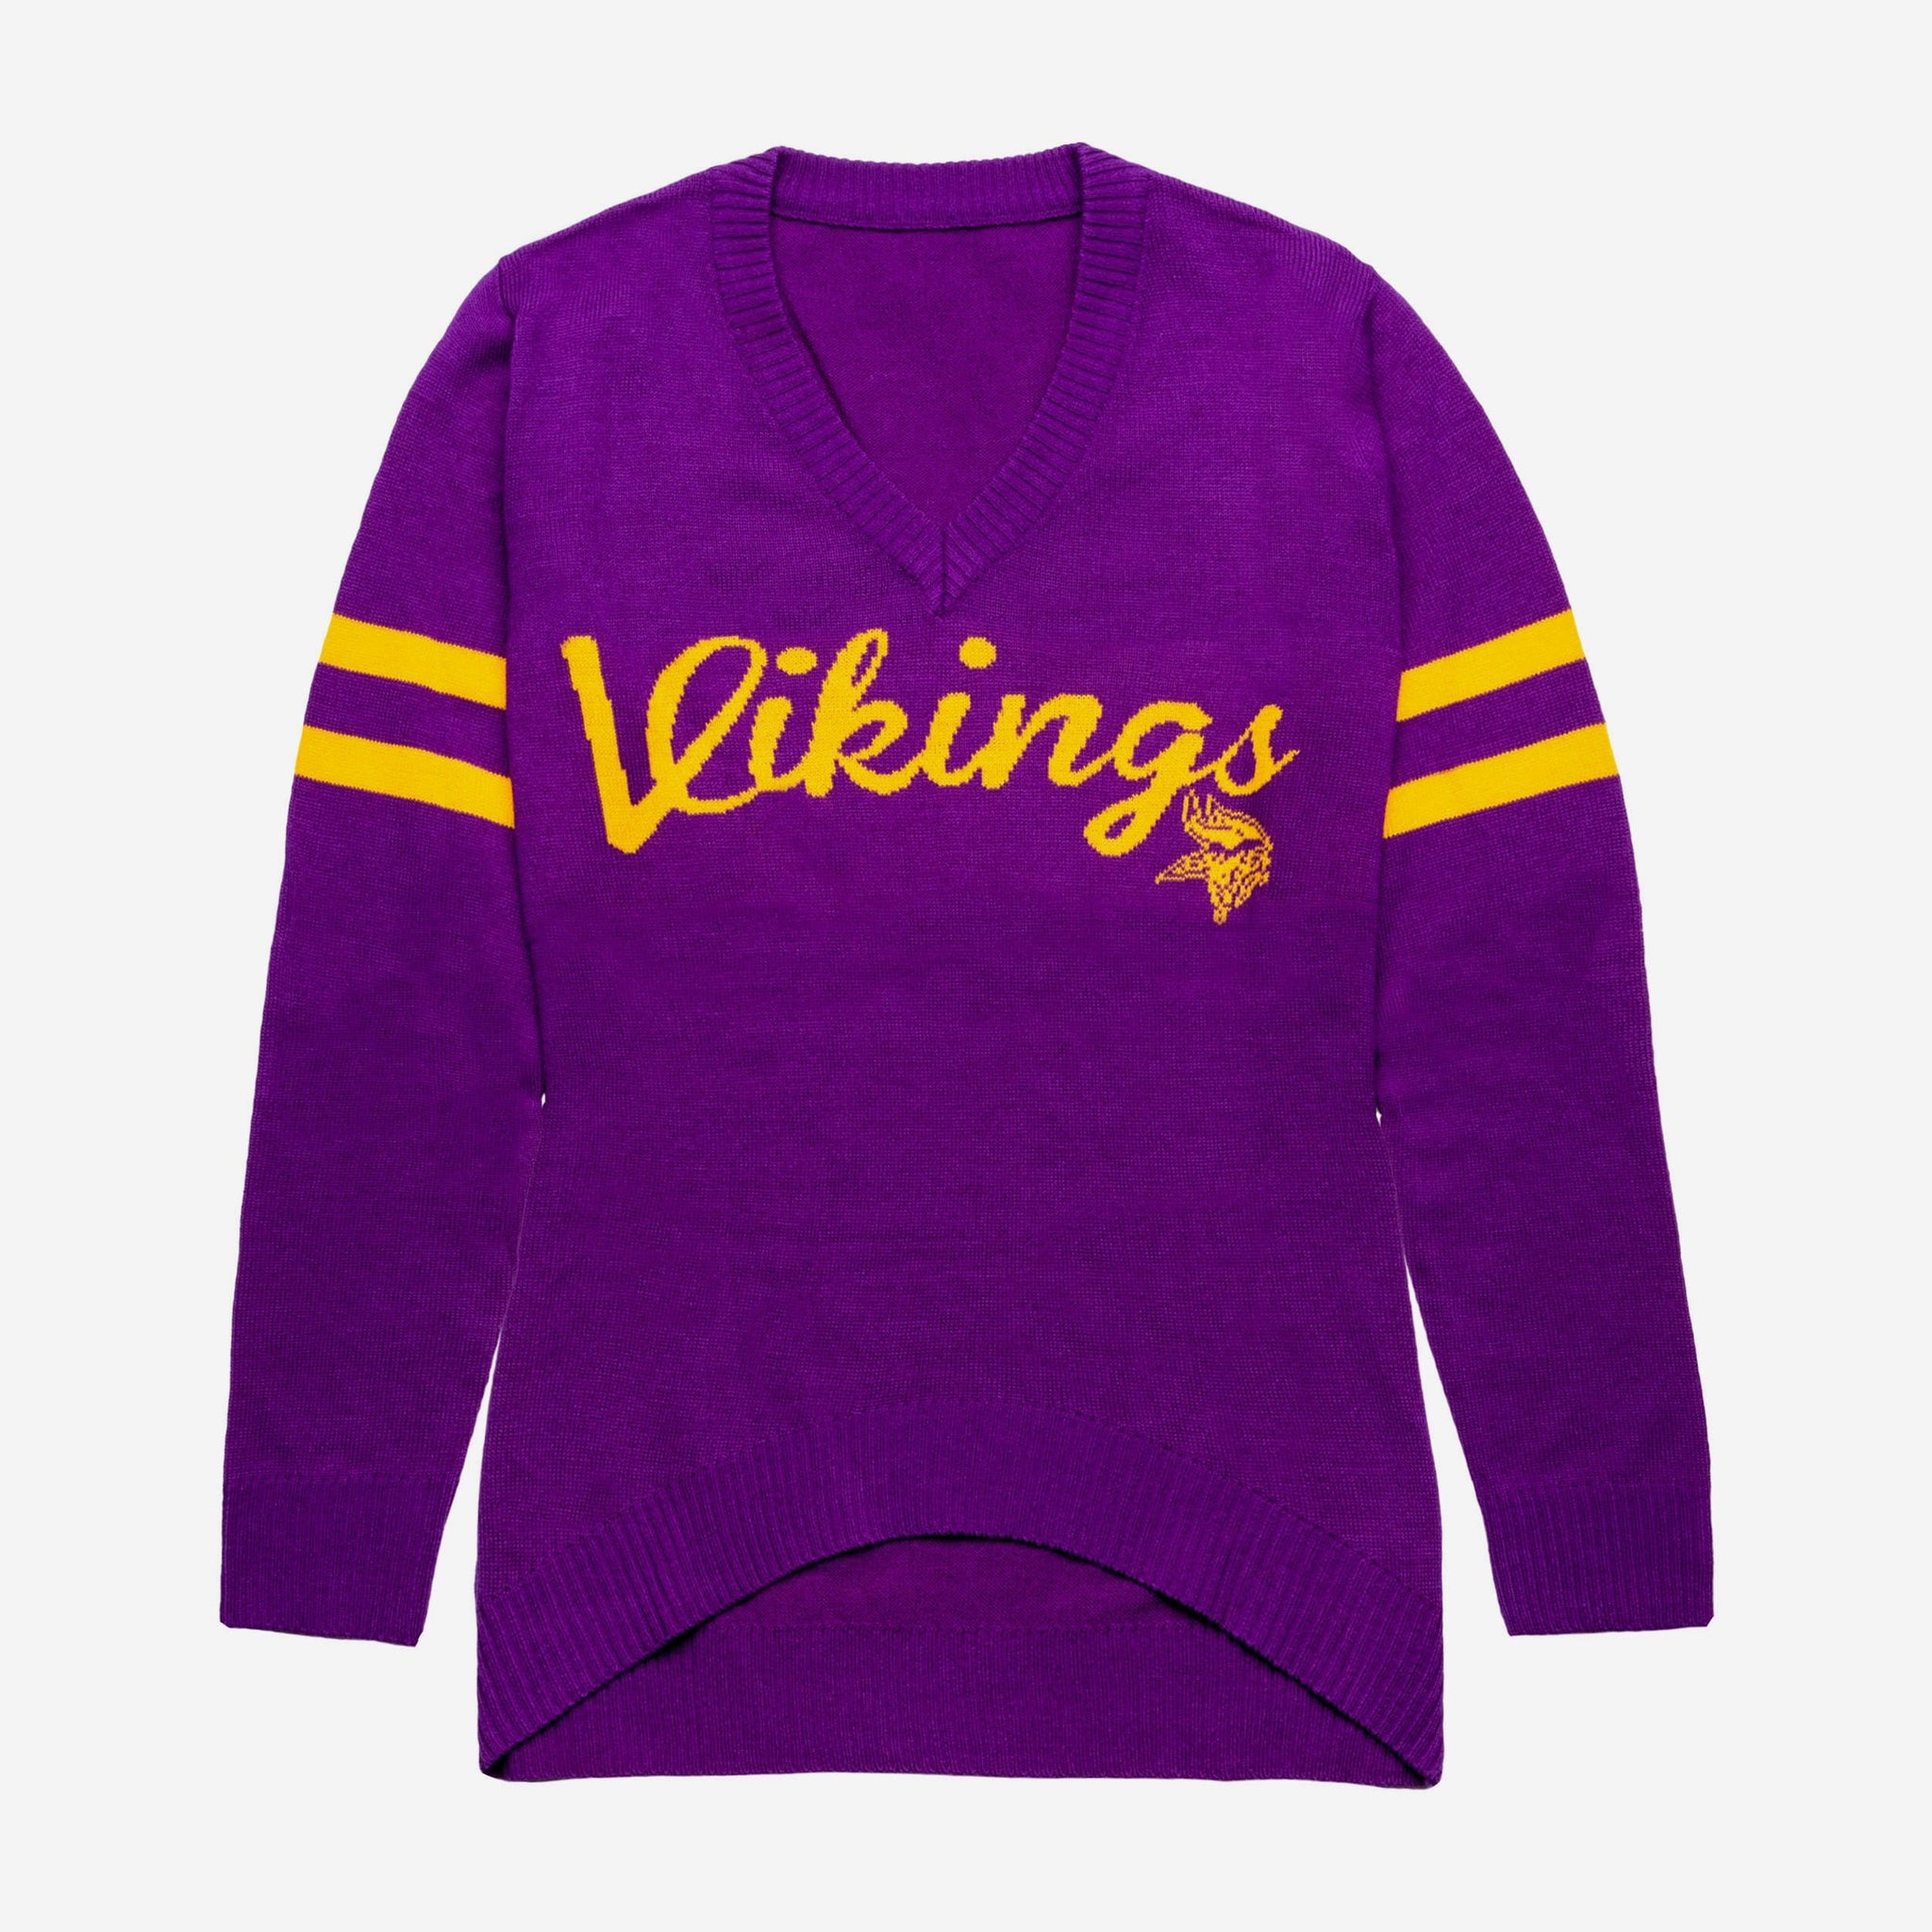 607219288a63f Minnesota Vikings Womens Vintage Stripe Sweater FOCO - FOCO.com